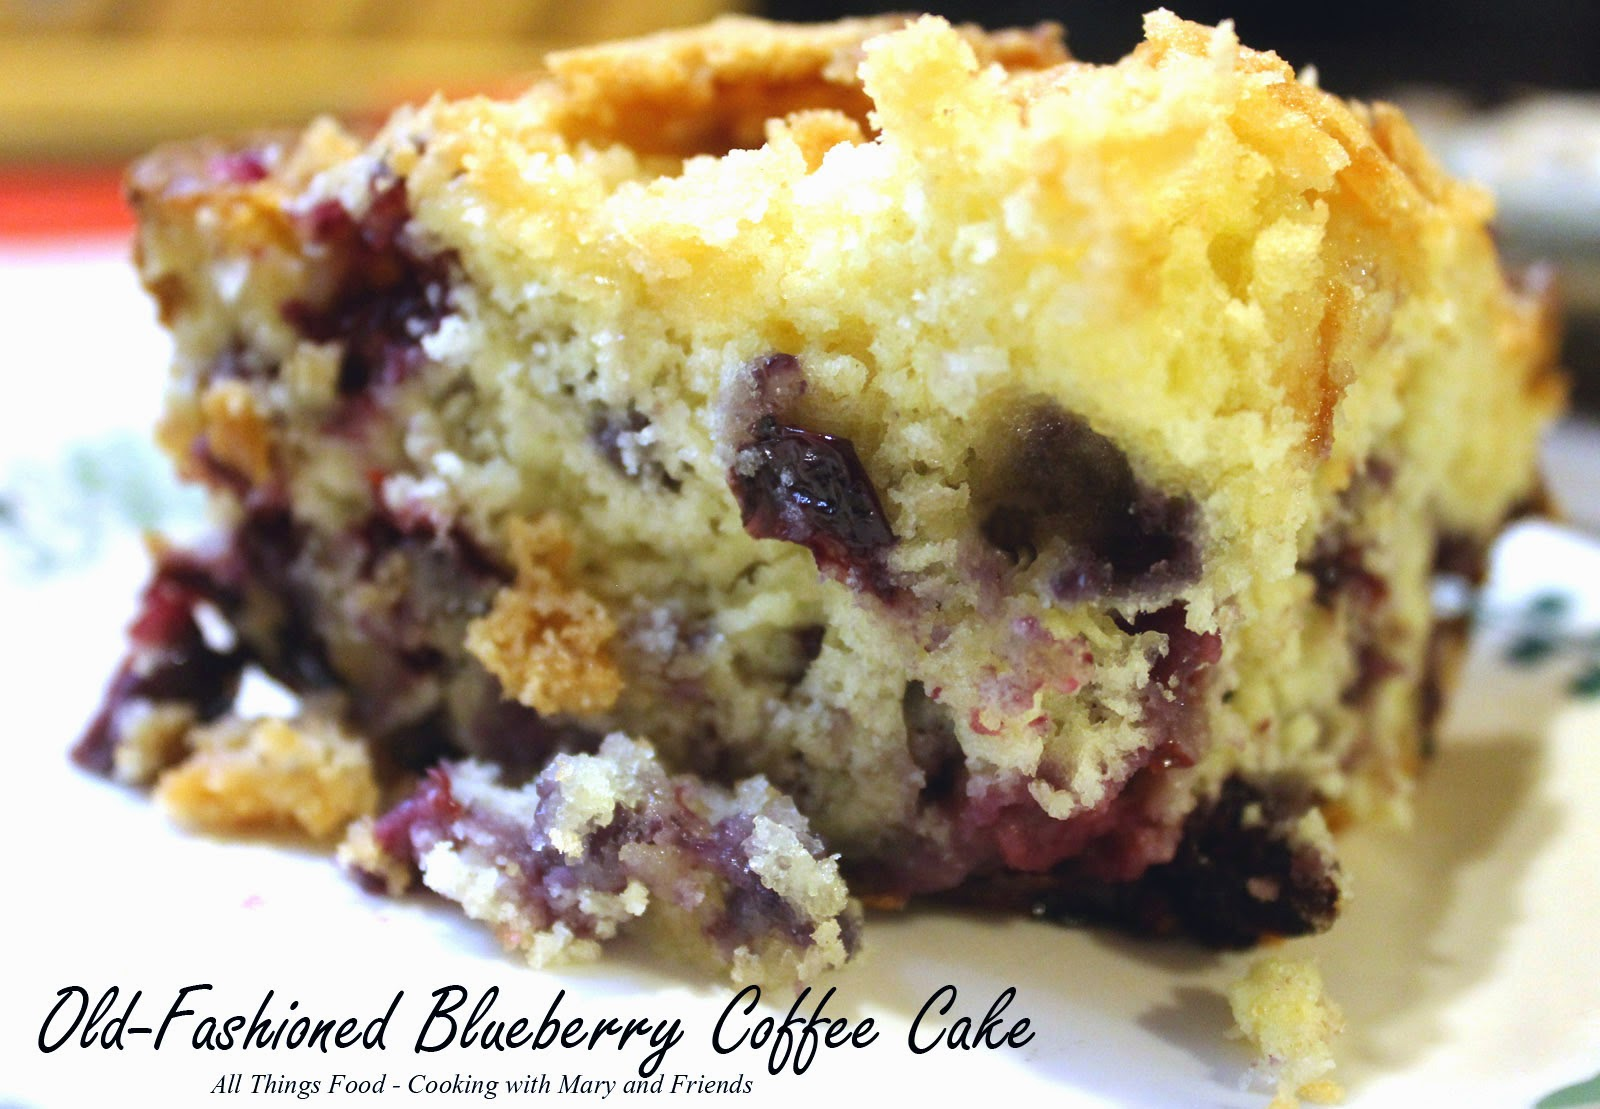 Cooking With Mary and Friends: Old-Fashioned Blueberry Coffee Cake